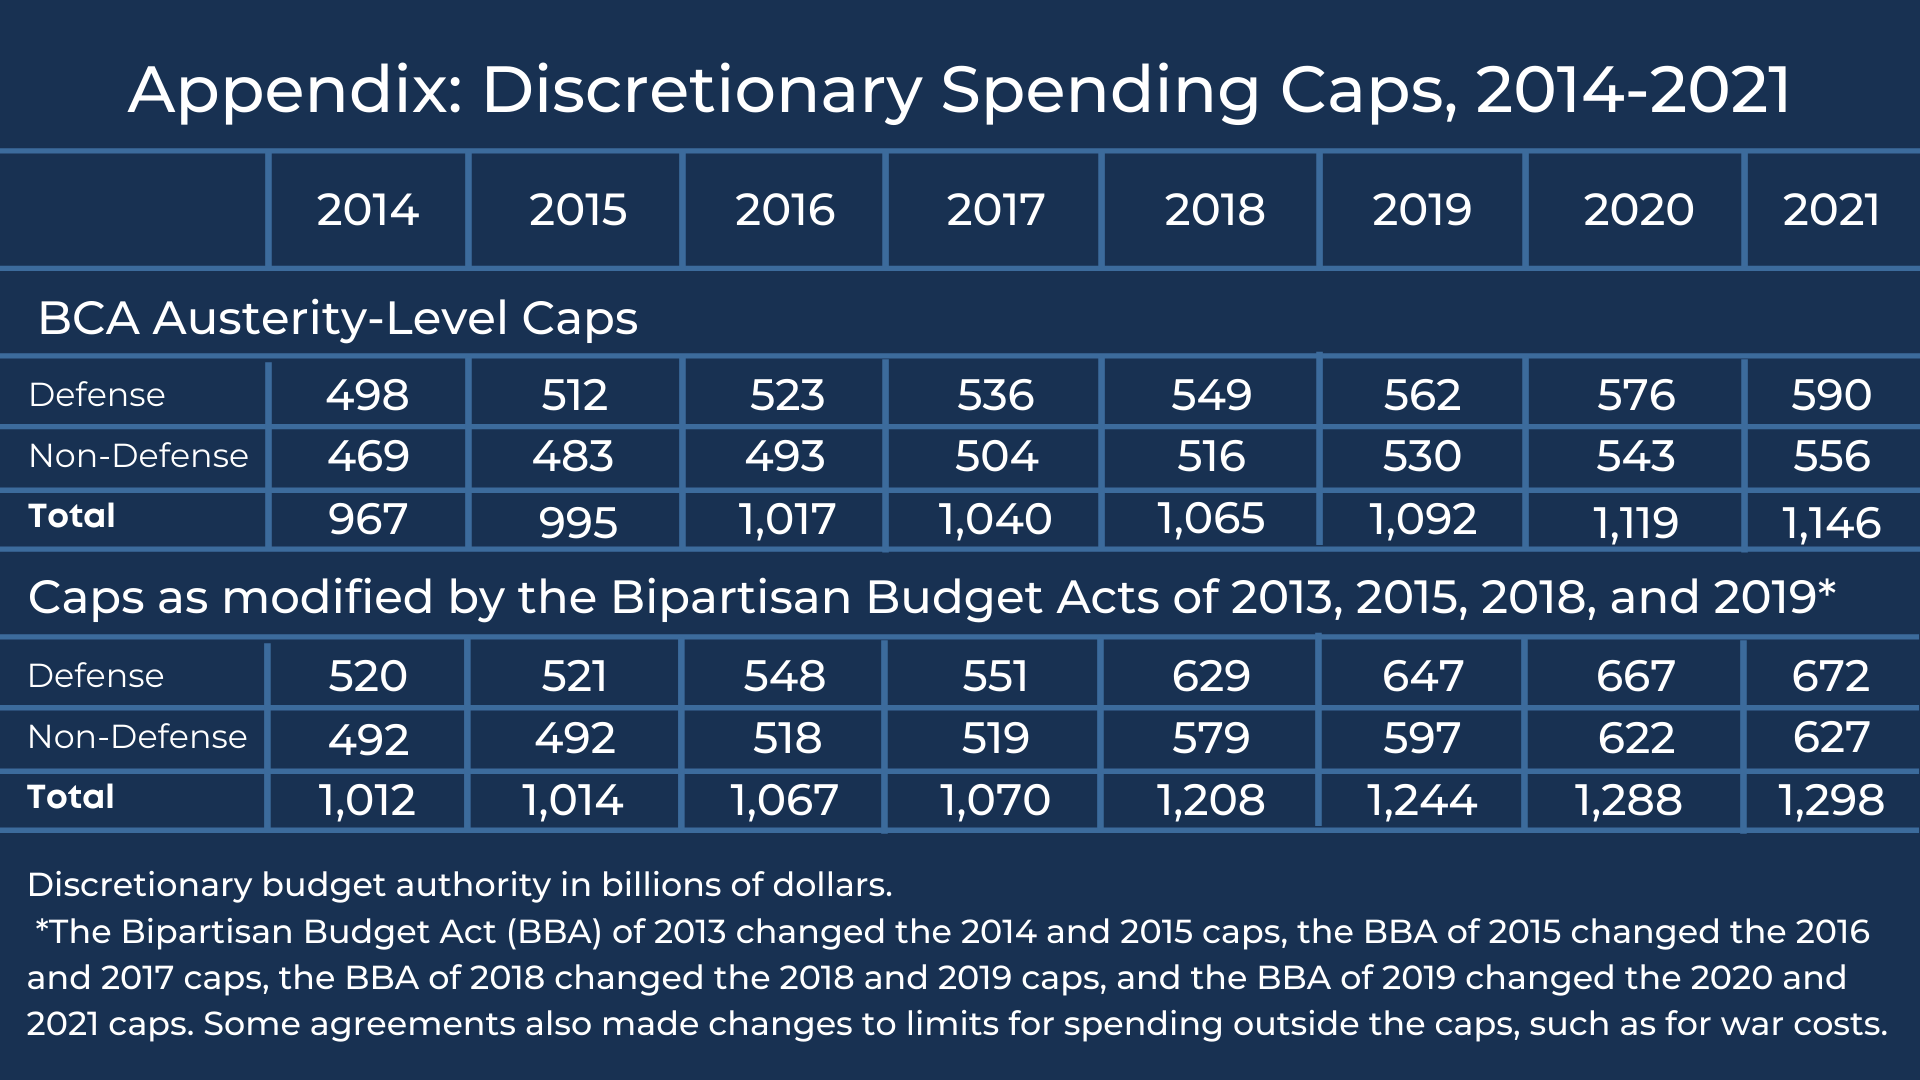 A chart outlines the discretionary spending cuts 2014-2021.